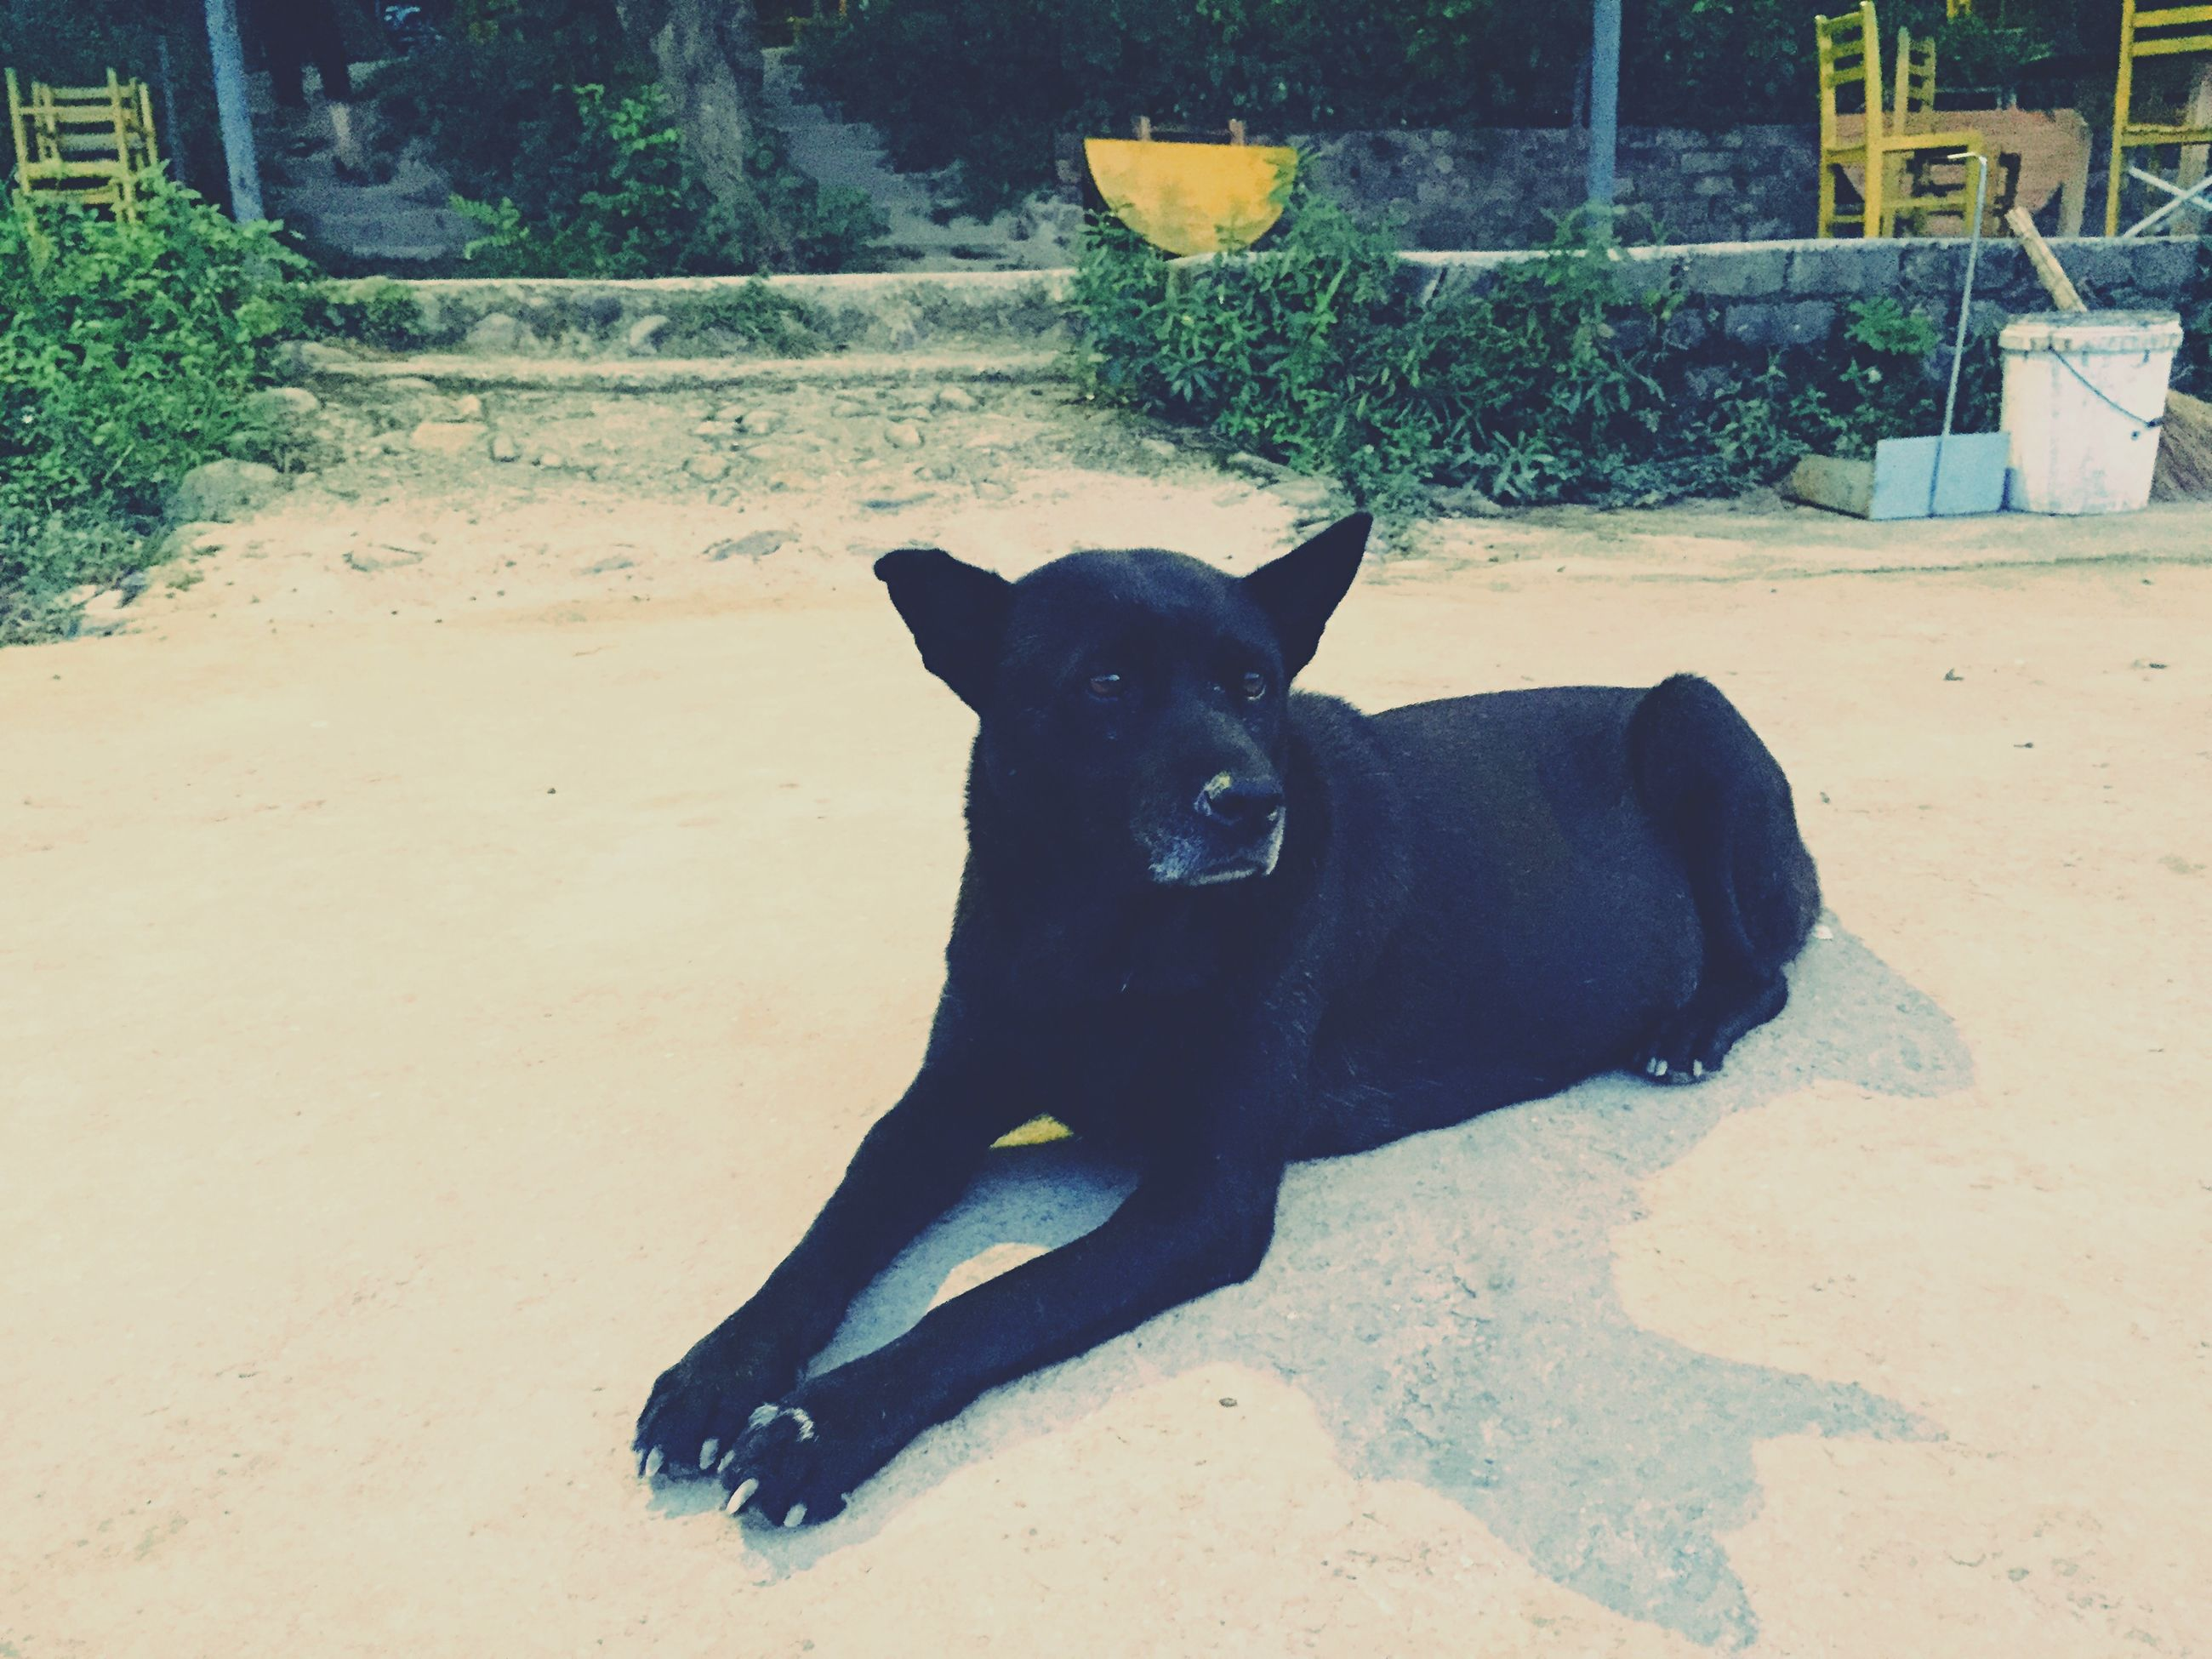 pets, domestic animals, one animal, mammal, animal themes, dog, black color, sitting, relaxation, sunlight, shadow, lying down, outdoors, looking at camera, domestic cat, portrait, full length, pet collar, day, no people